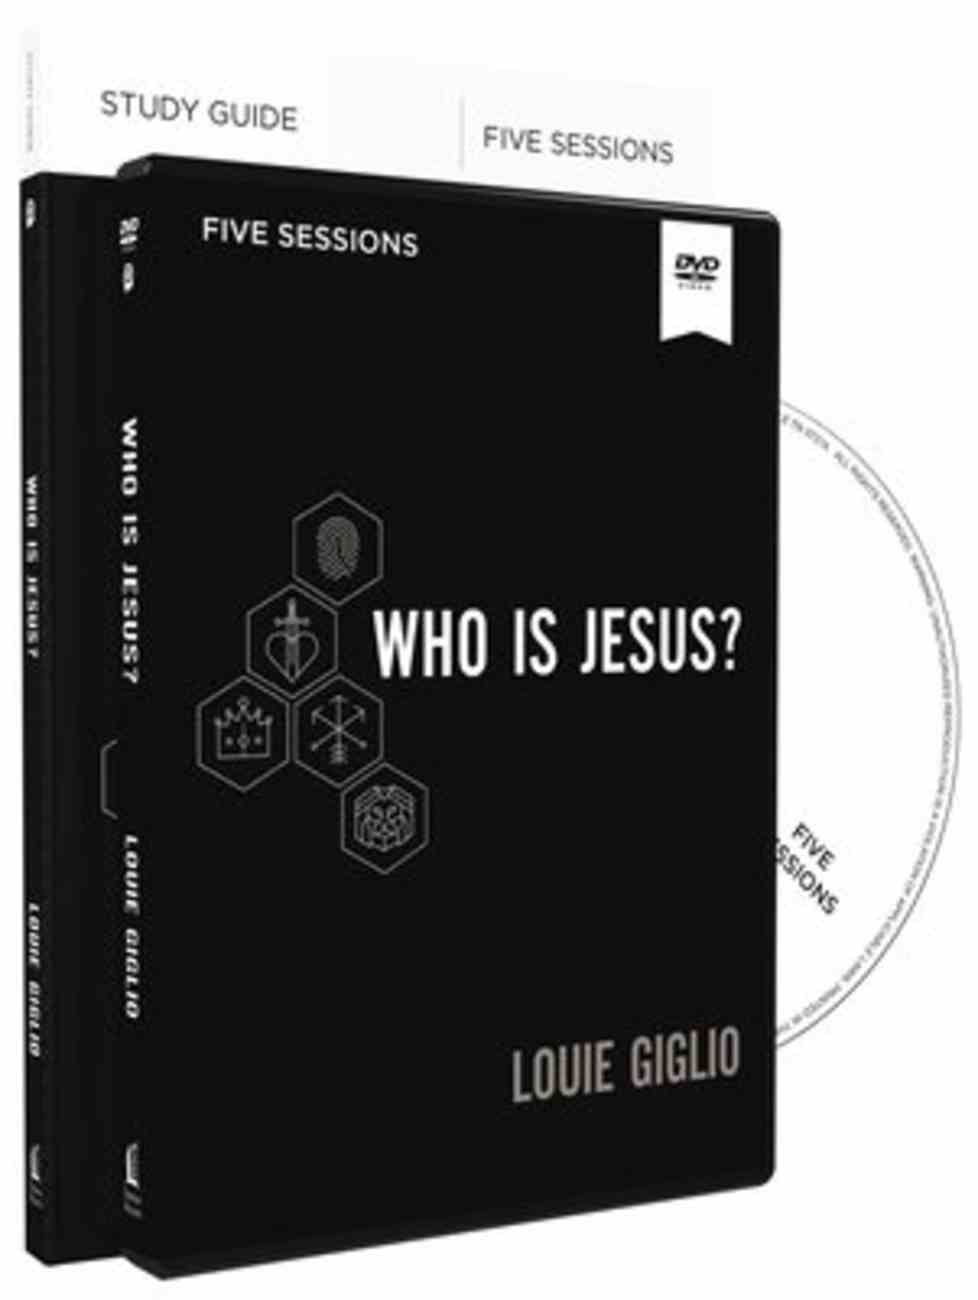 Who is Jesus? (Study Guide And Dvd) Paperback